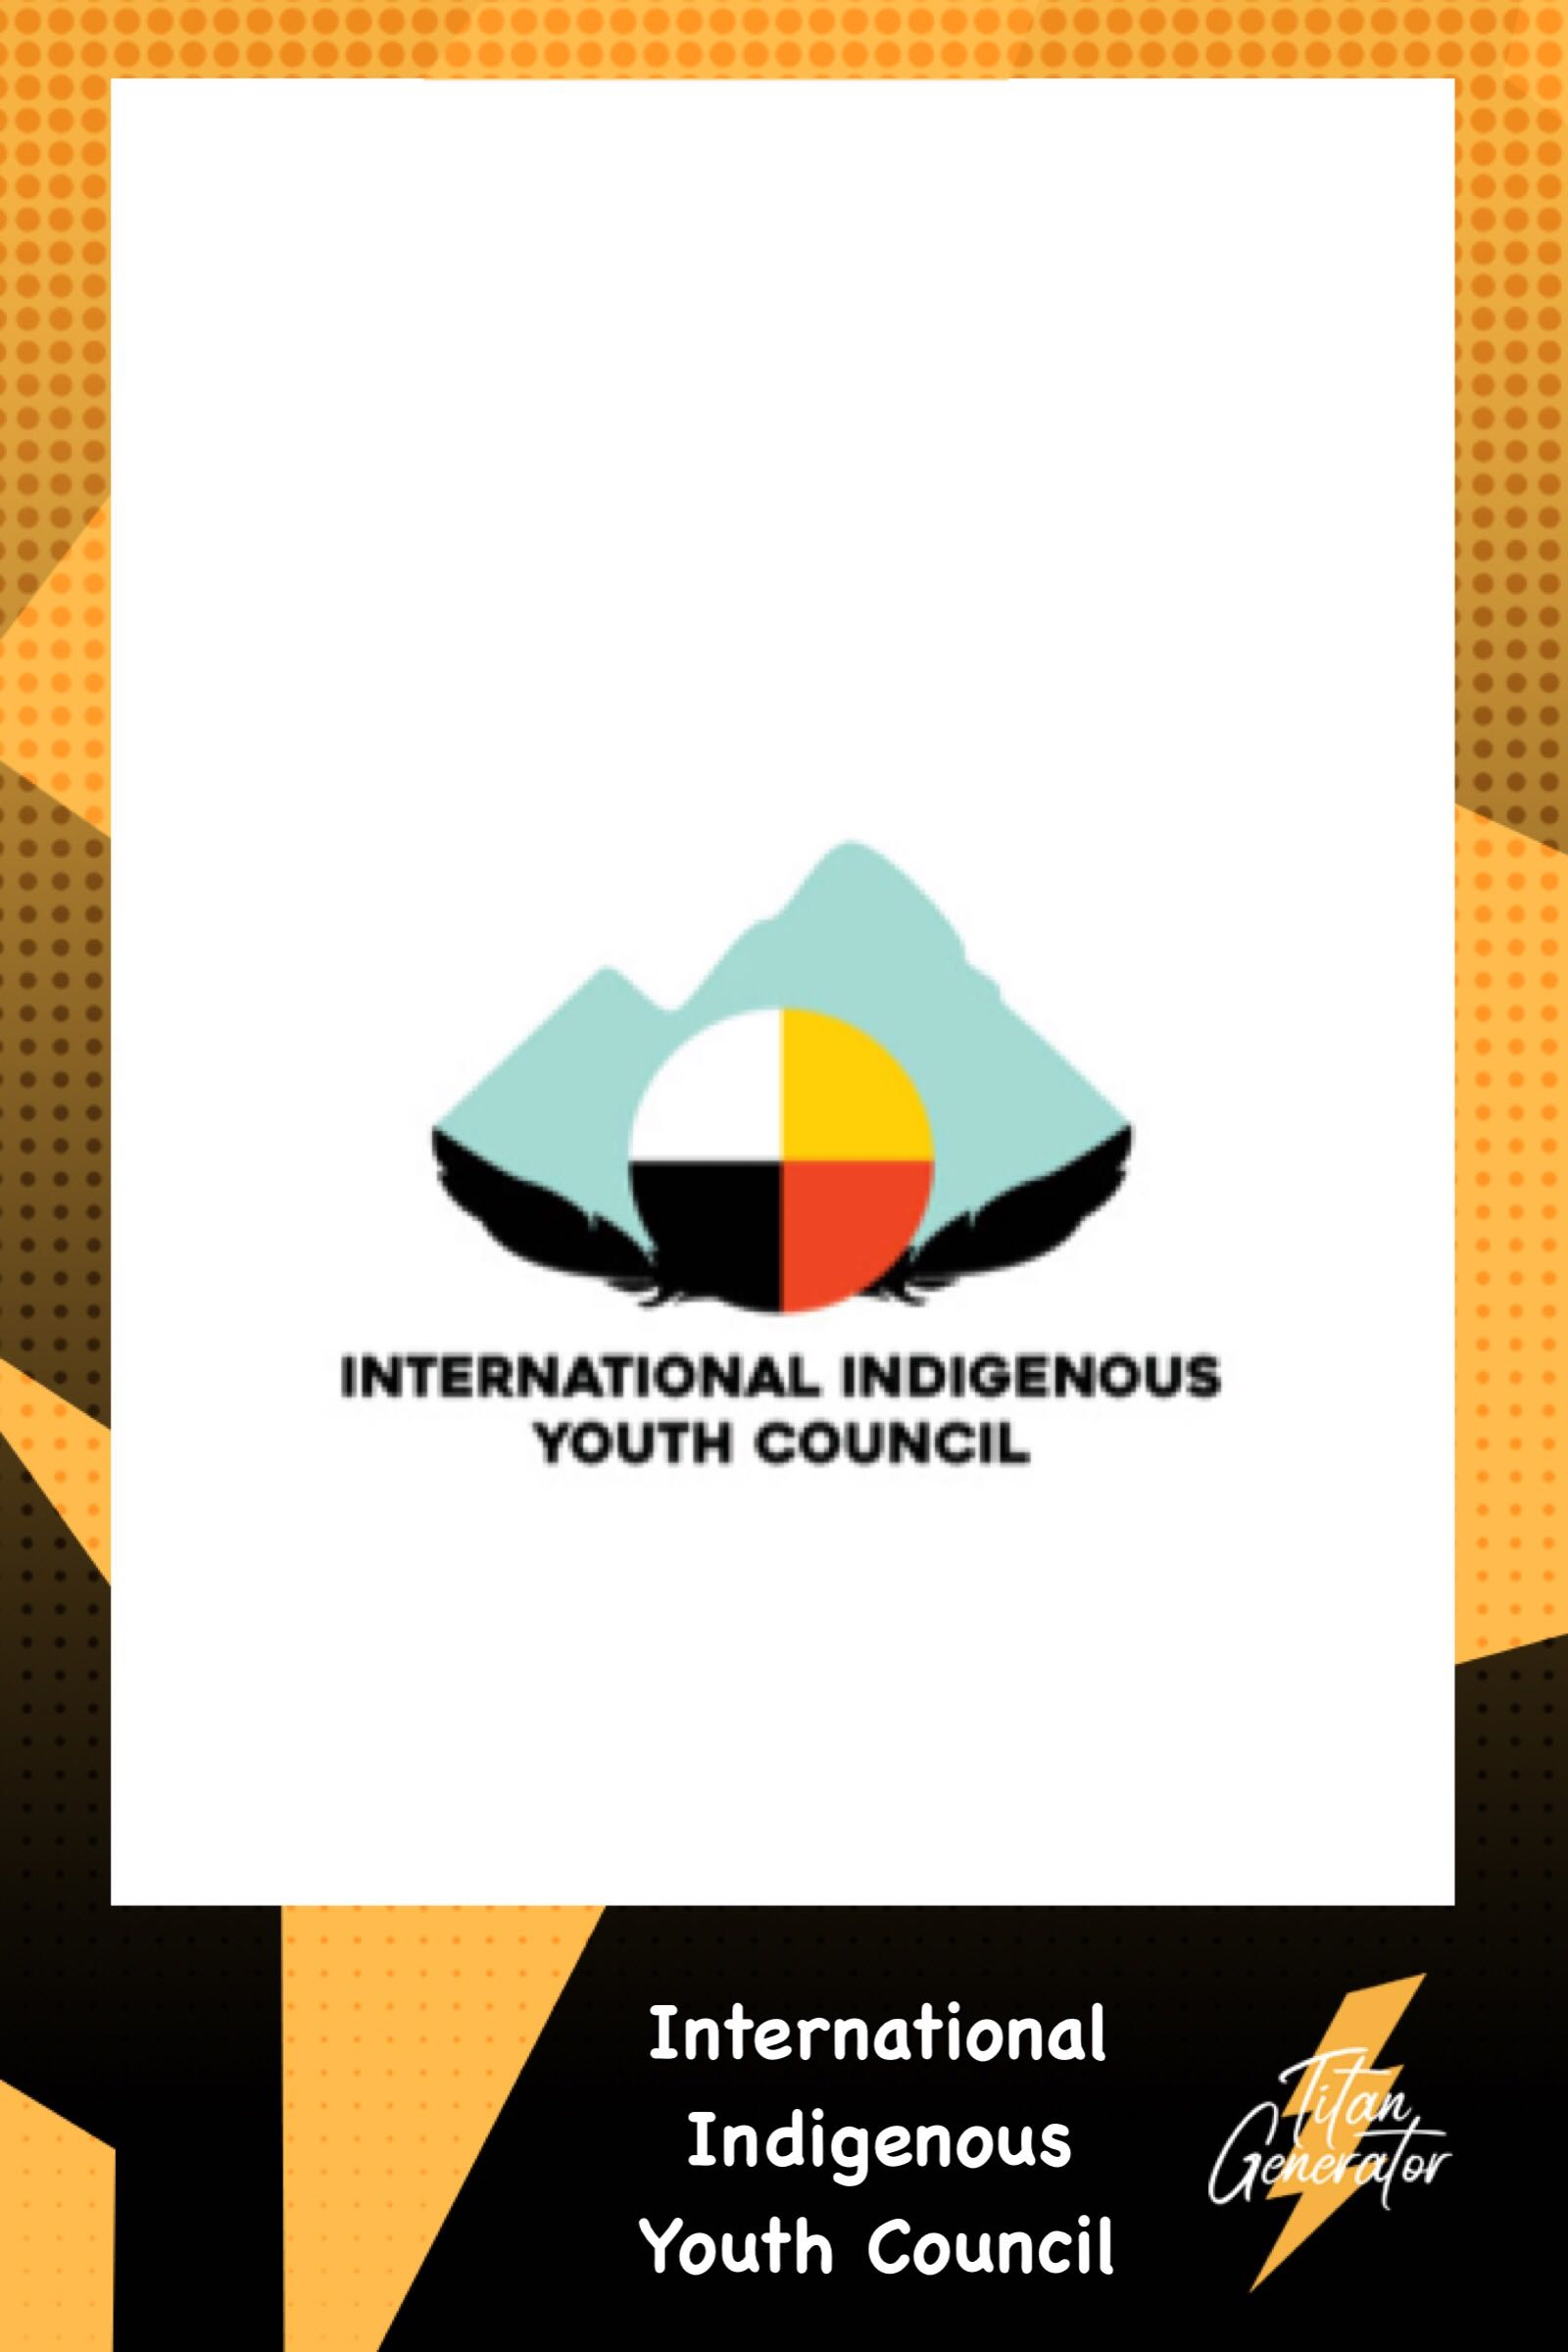 International Indigenous Youth Council